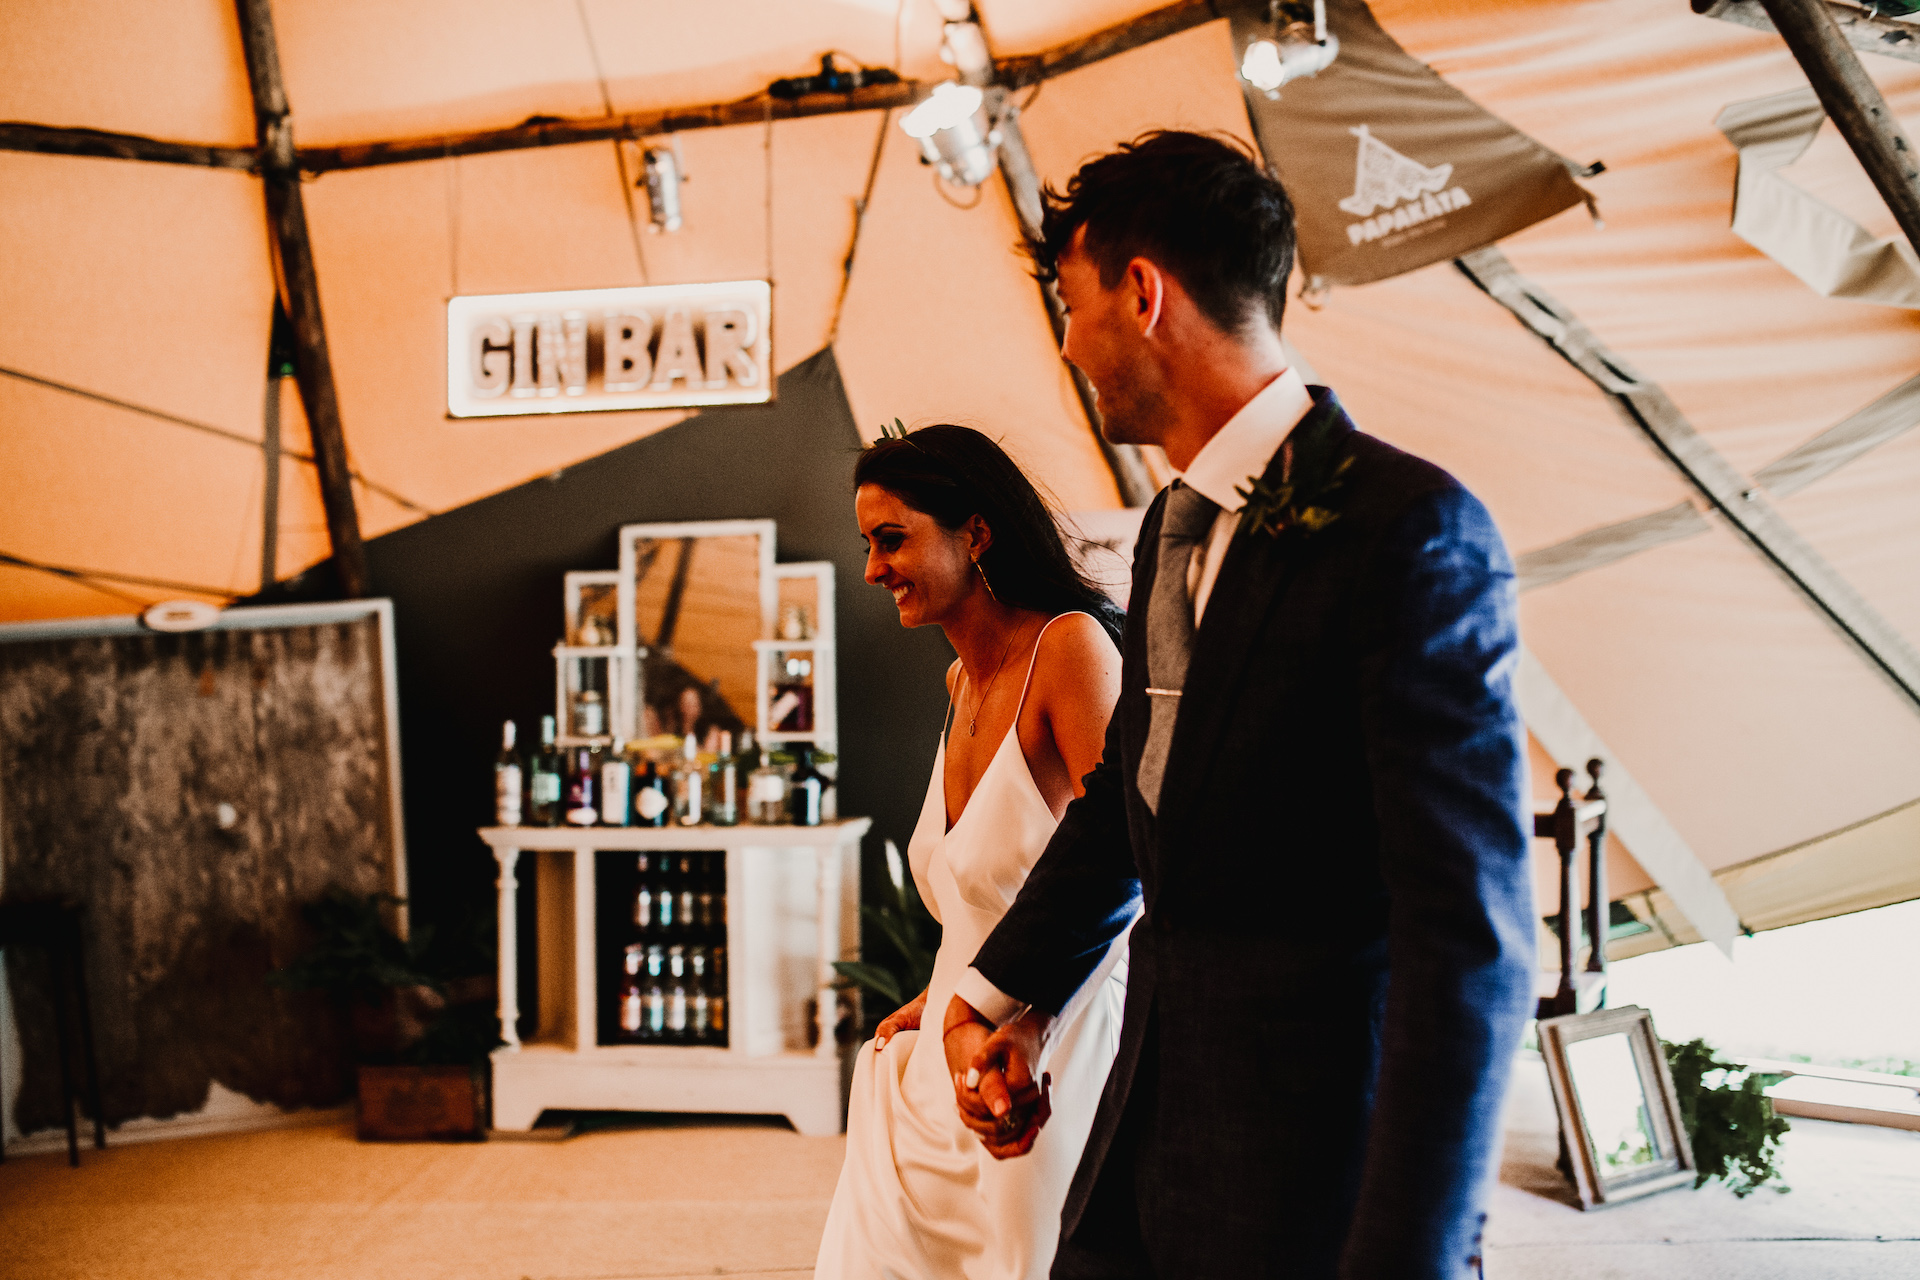 PapaKåta couple Hayley & Luke's Teepee Wedding in Ascott-Under-Wychwood, Oxon captured by Carla Blain Photography- Making an entrance